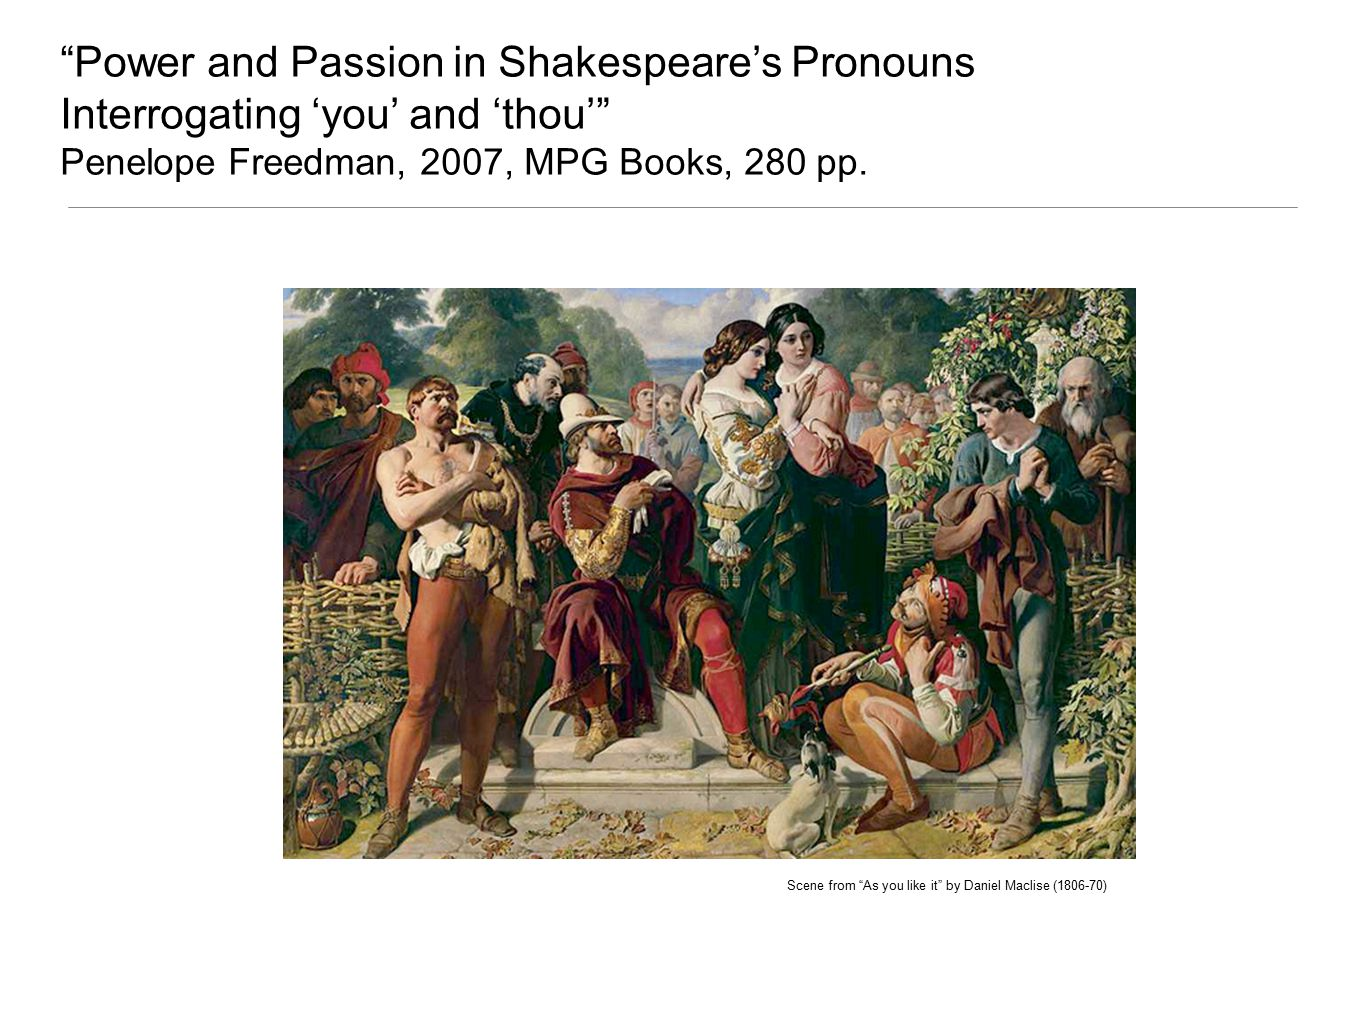 Power and Passion in Shakespeare's Pronouns Interrogating 'you' and 'thou' Penelope Freedman, 2007, MPG Books, 280 pp.